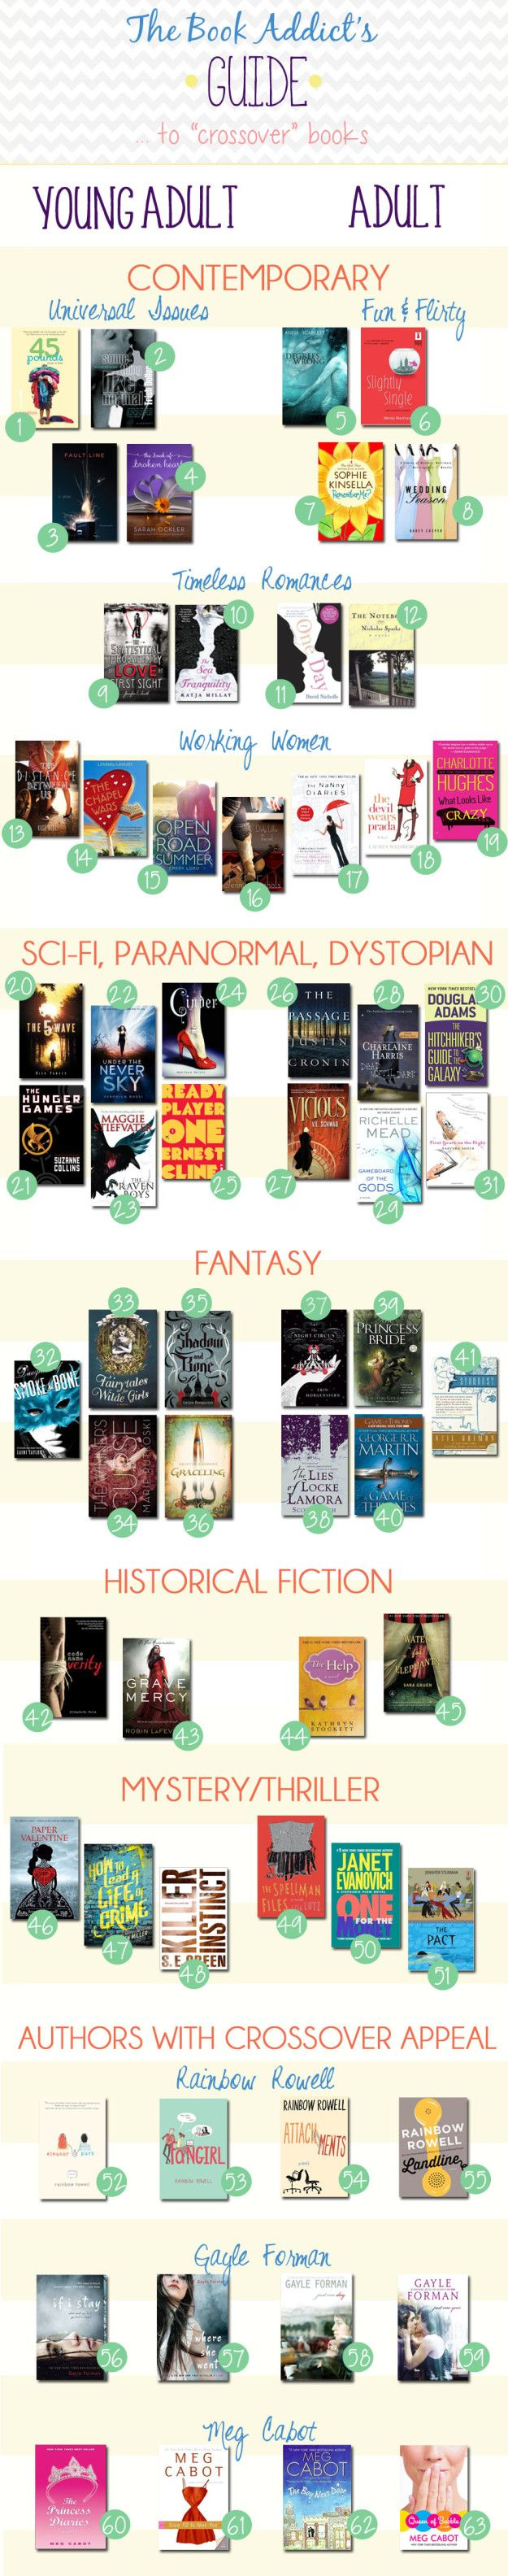 "Hesitant to get into YA? Or do you love YA books and want to dip into Adult? Check out my new ""guide"" to ""CROSSOVER"" books to bridge the gap between YA and Adult! // Infographic"